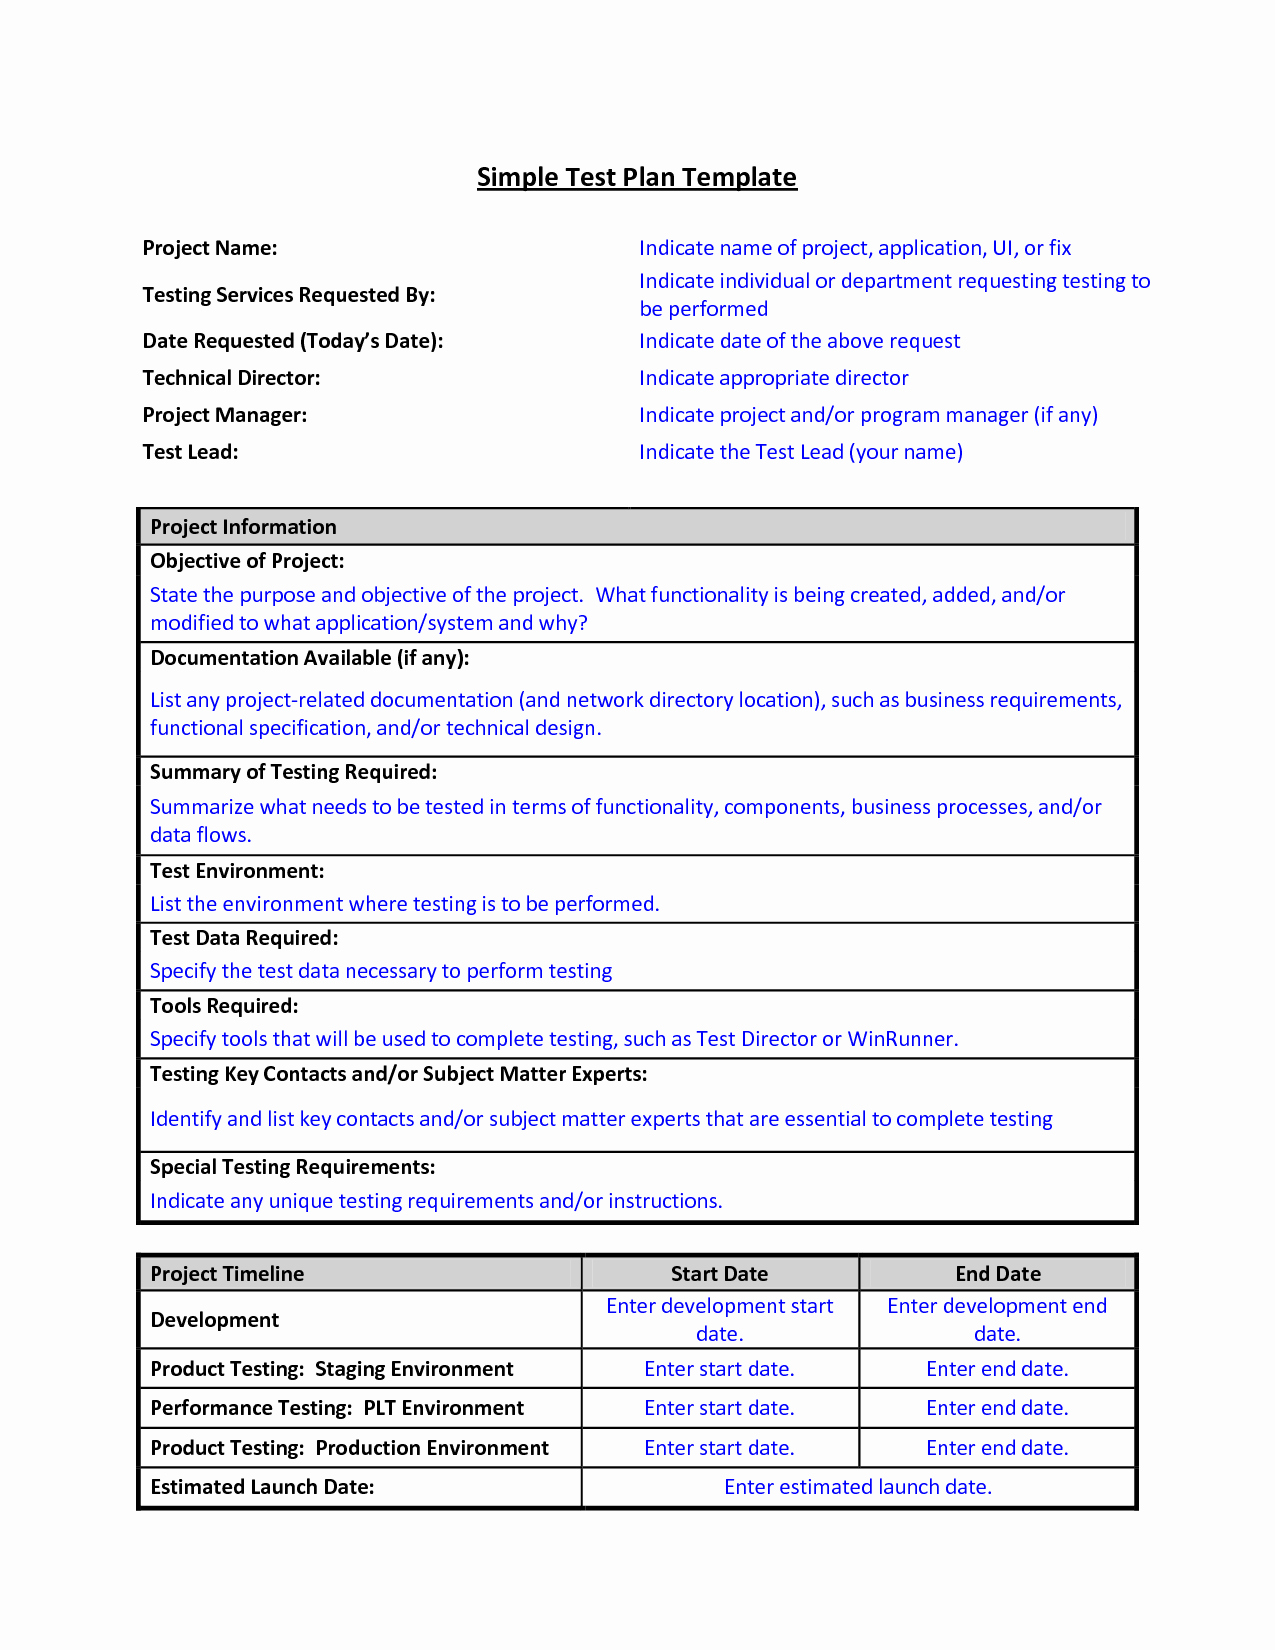 Simple Test Plan Template Awesome Test Plan Template format Sample Work Word Simple